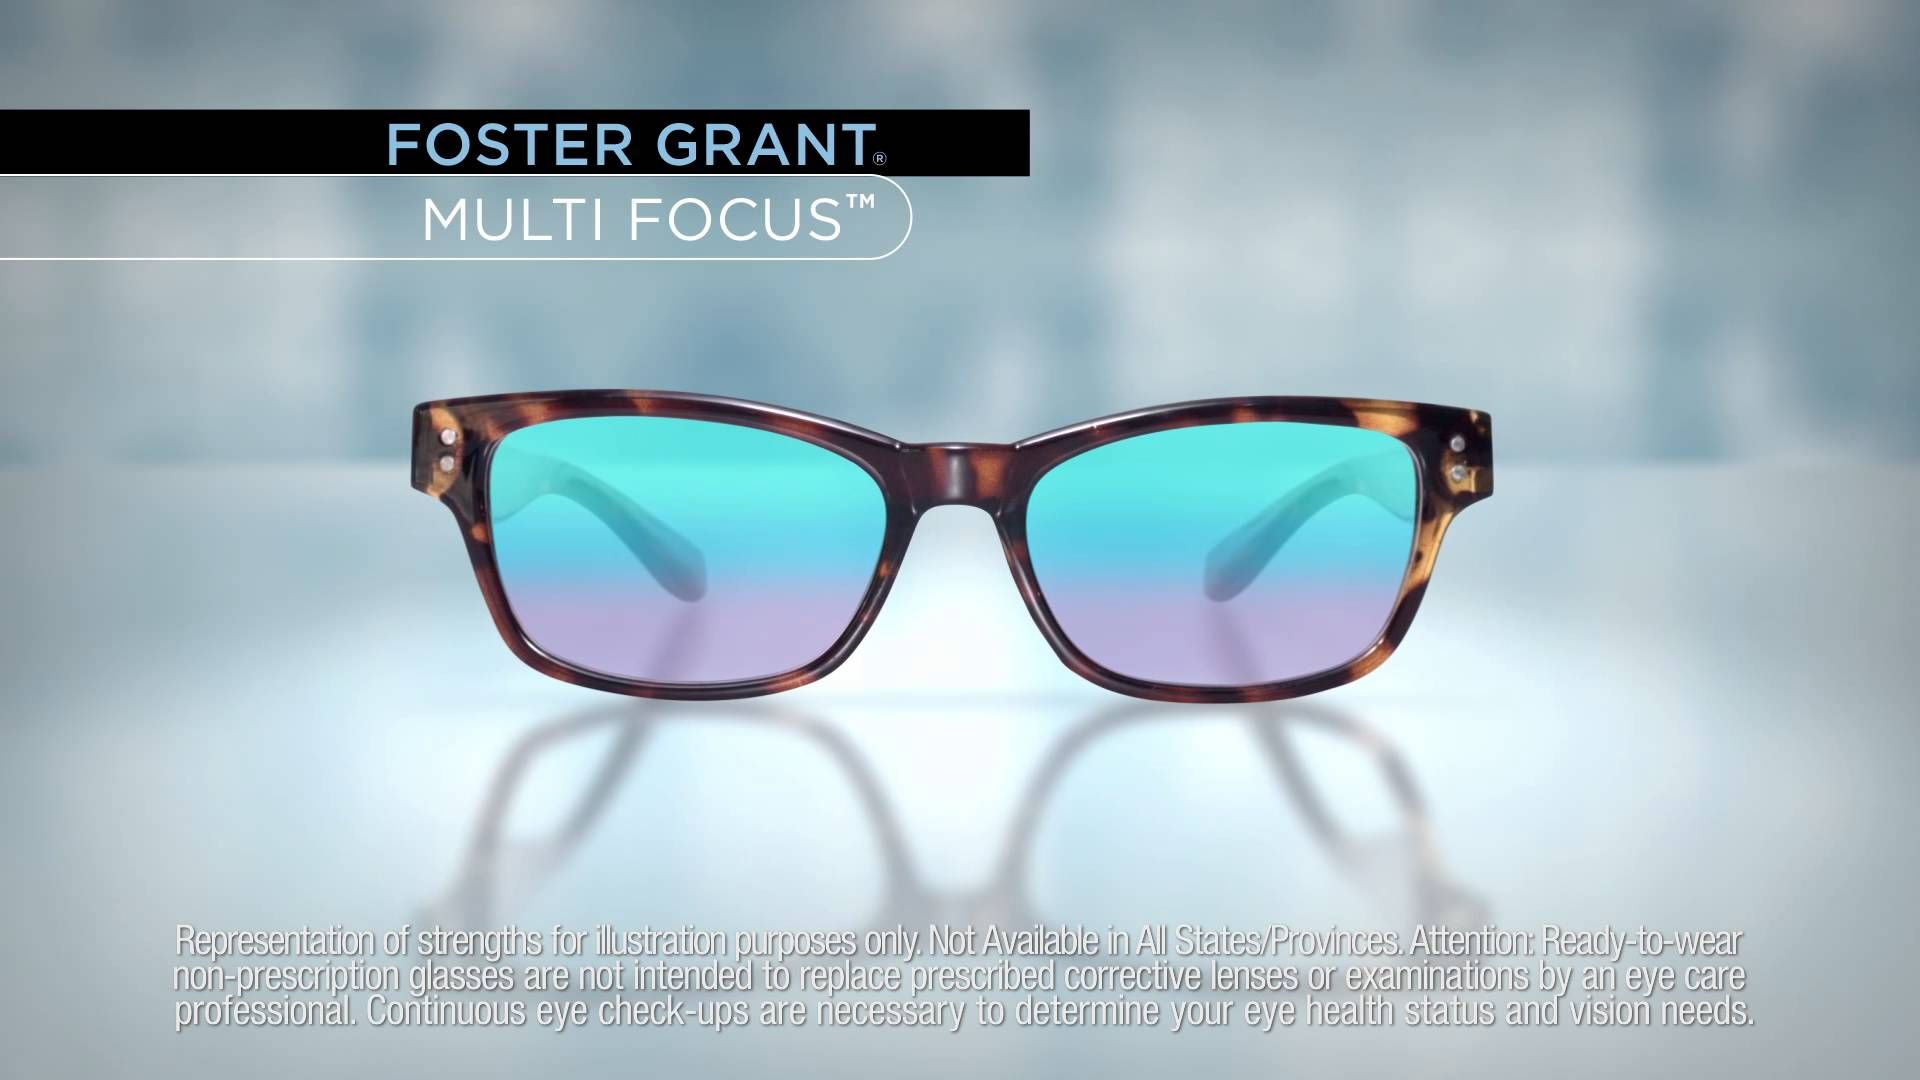 top ideas about multi focus by foster grant